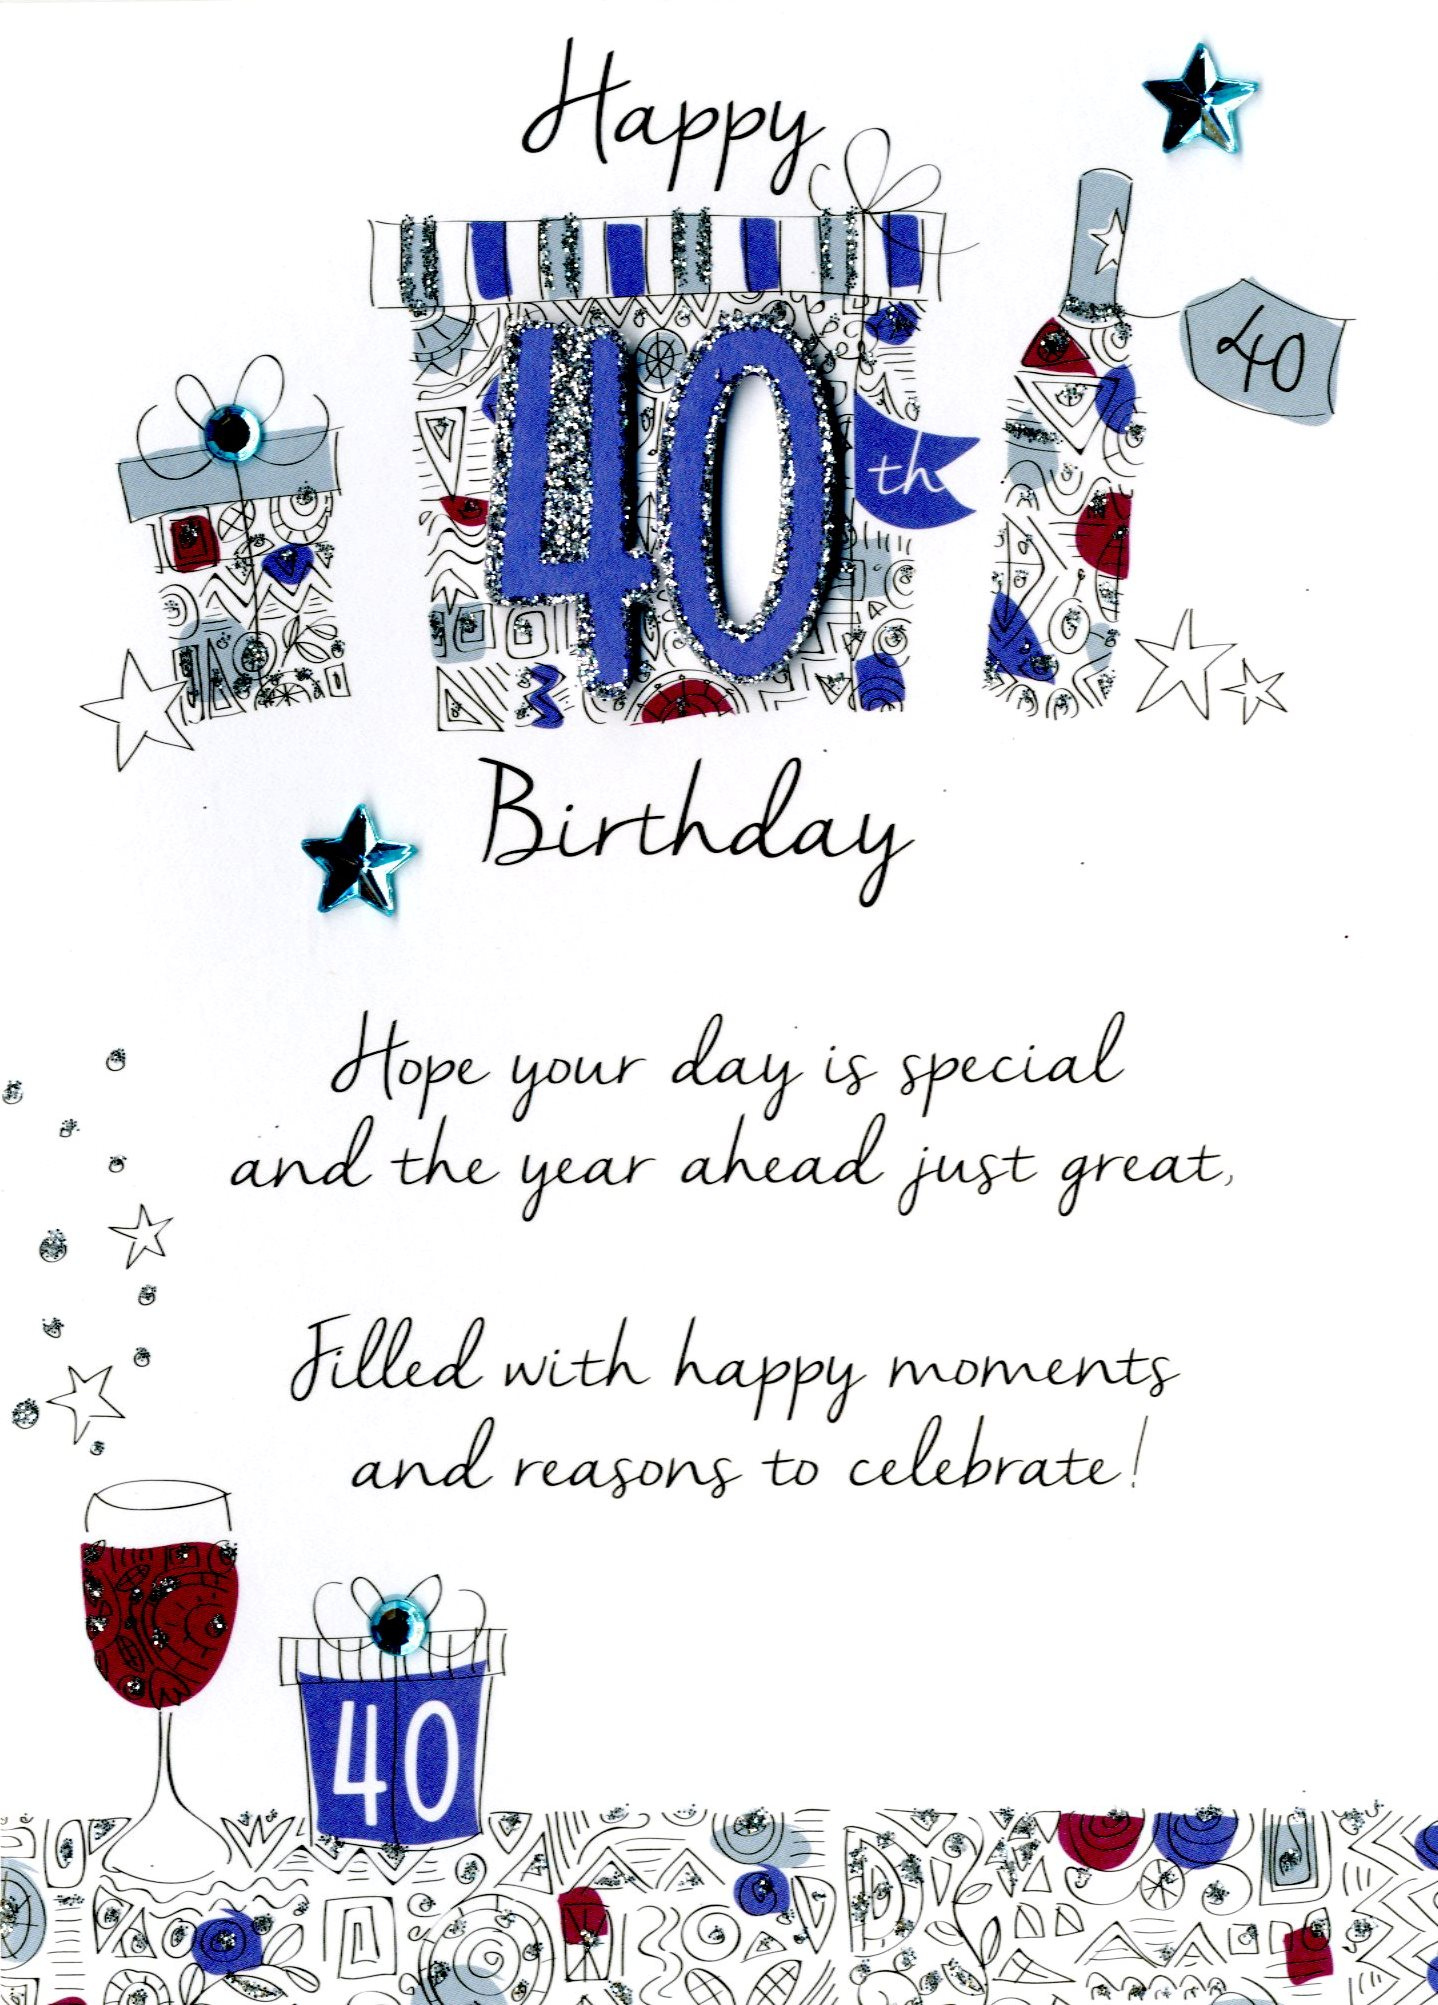 40th birthday greeting card messages ; JT026